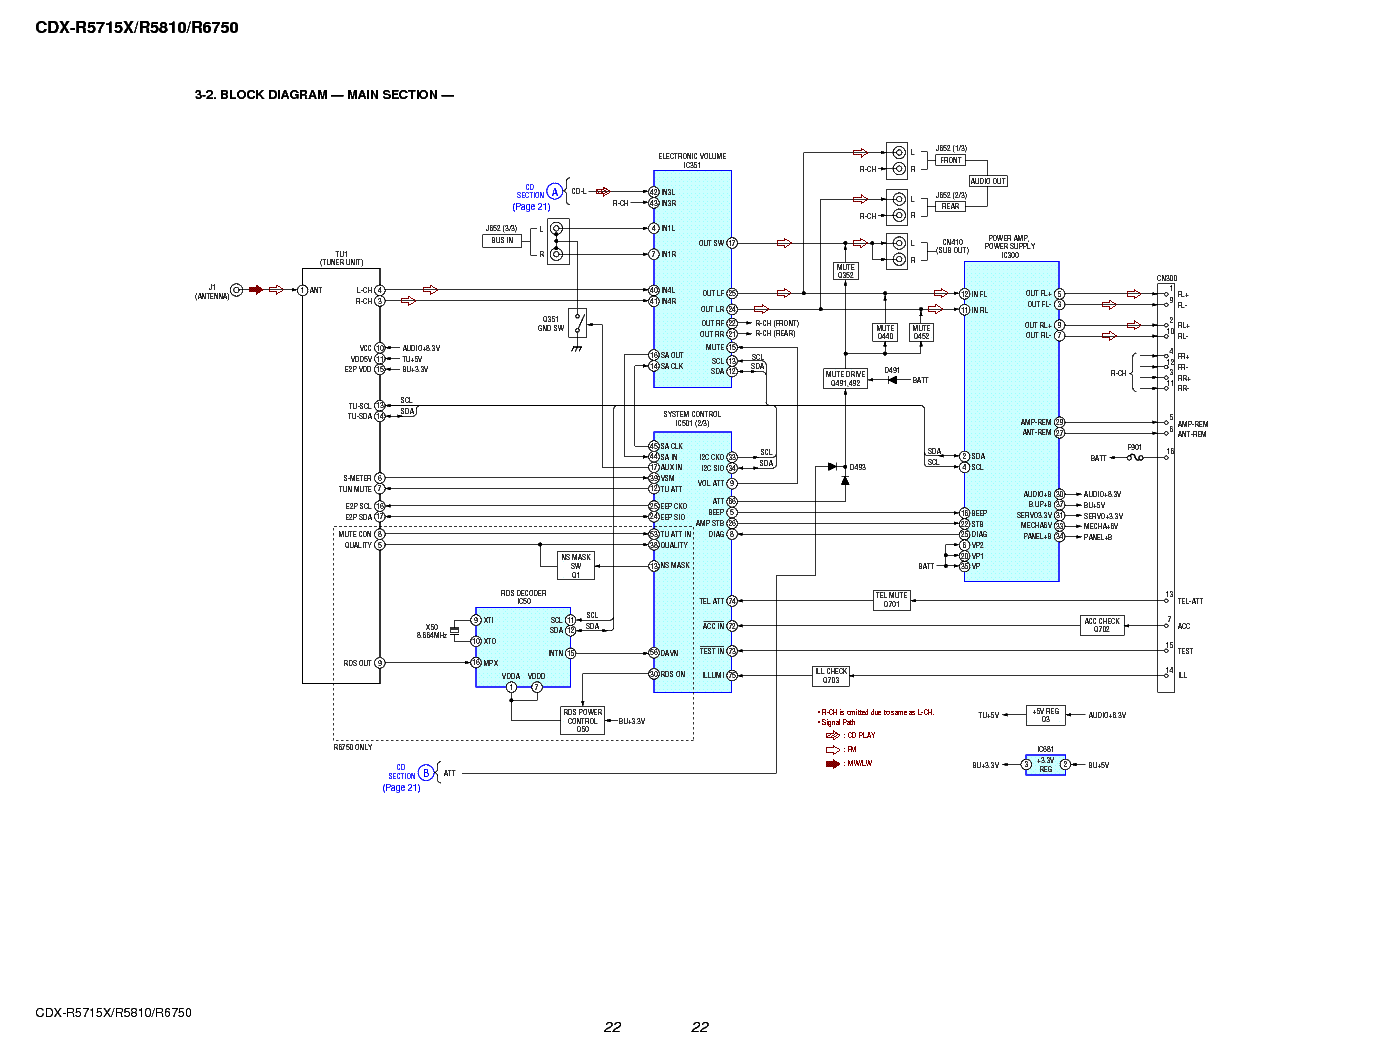 Sony Cdx Gt200 Wiring Harness 29 Diagram Images Deck R5715pdf 1